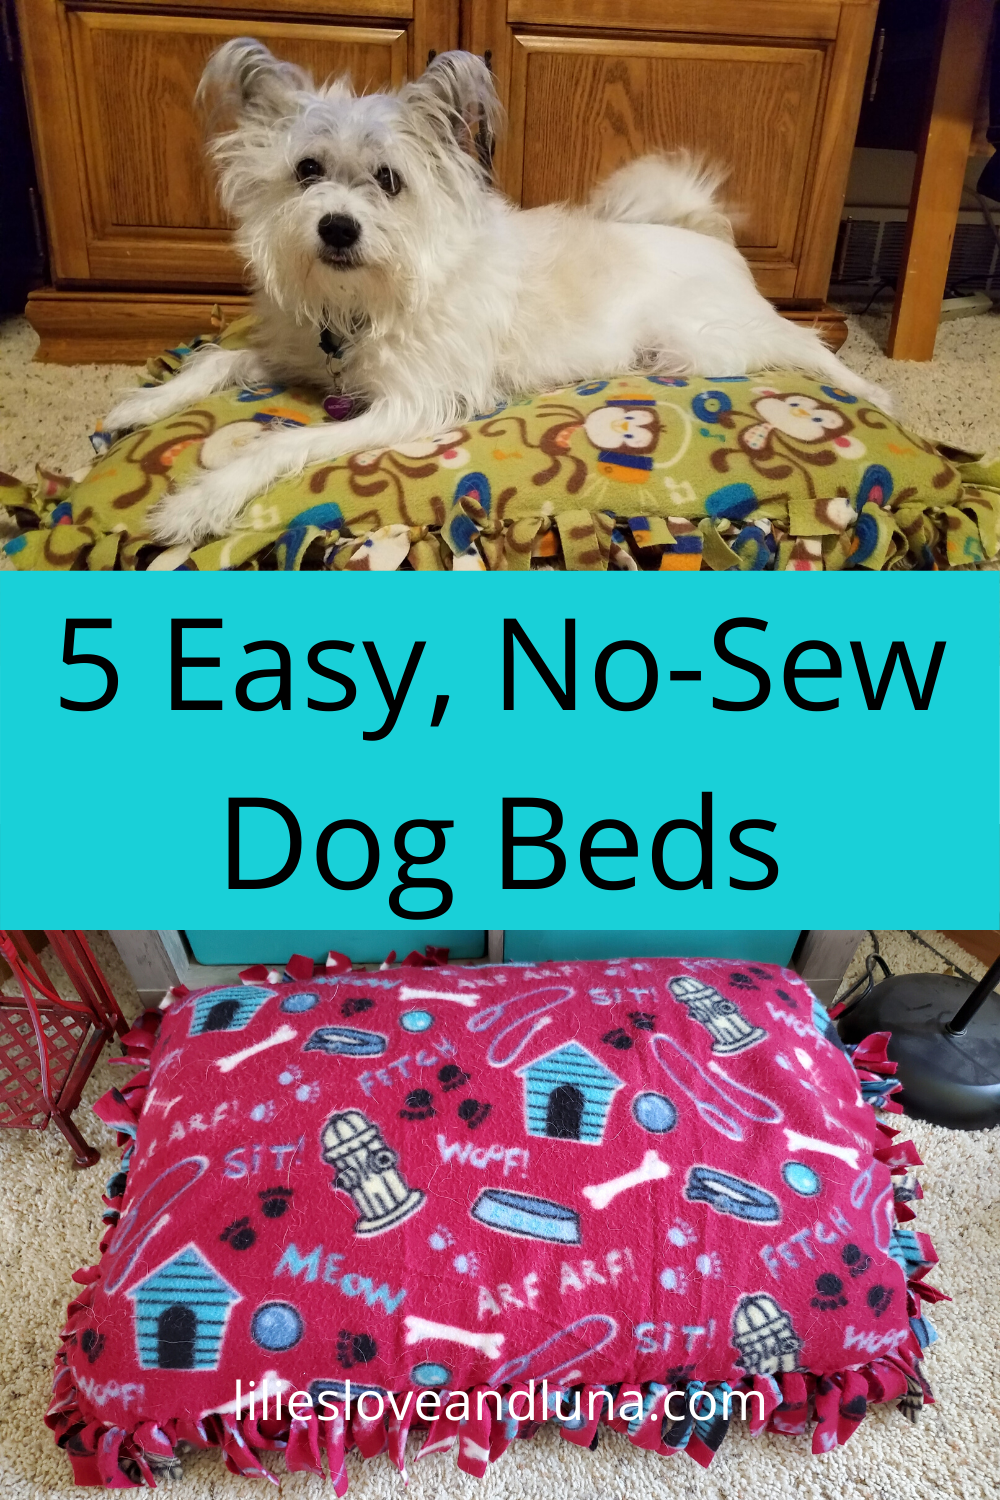 5 DIY Pet Beds in 2020 Diy pet bed, Diy dog stuff, Diy